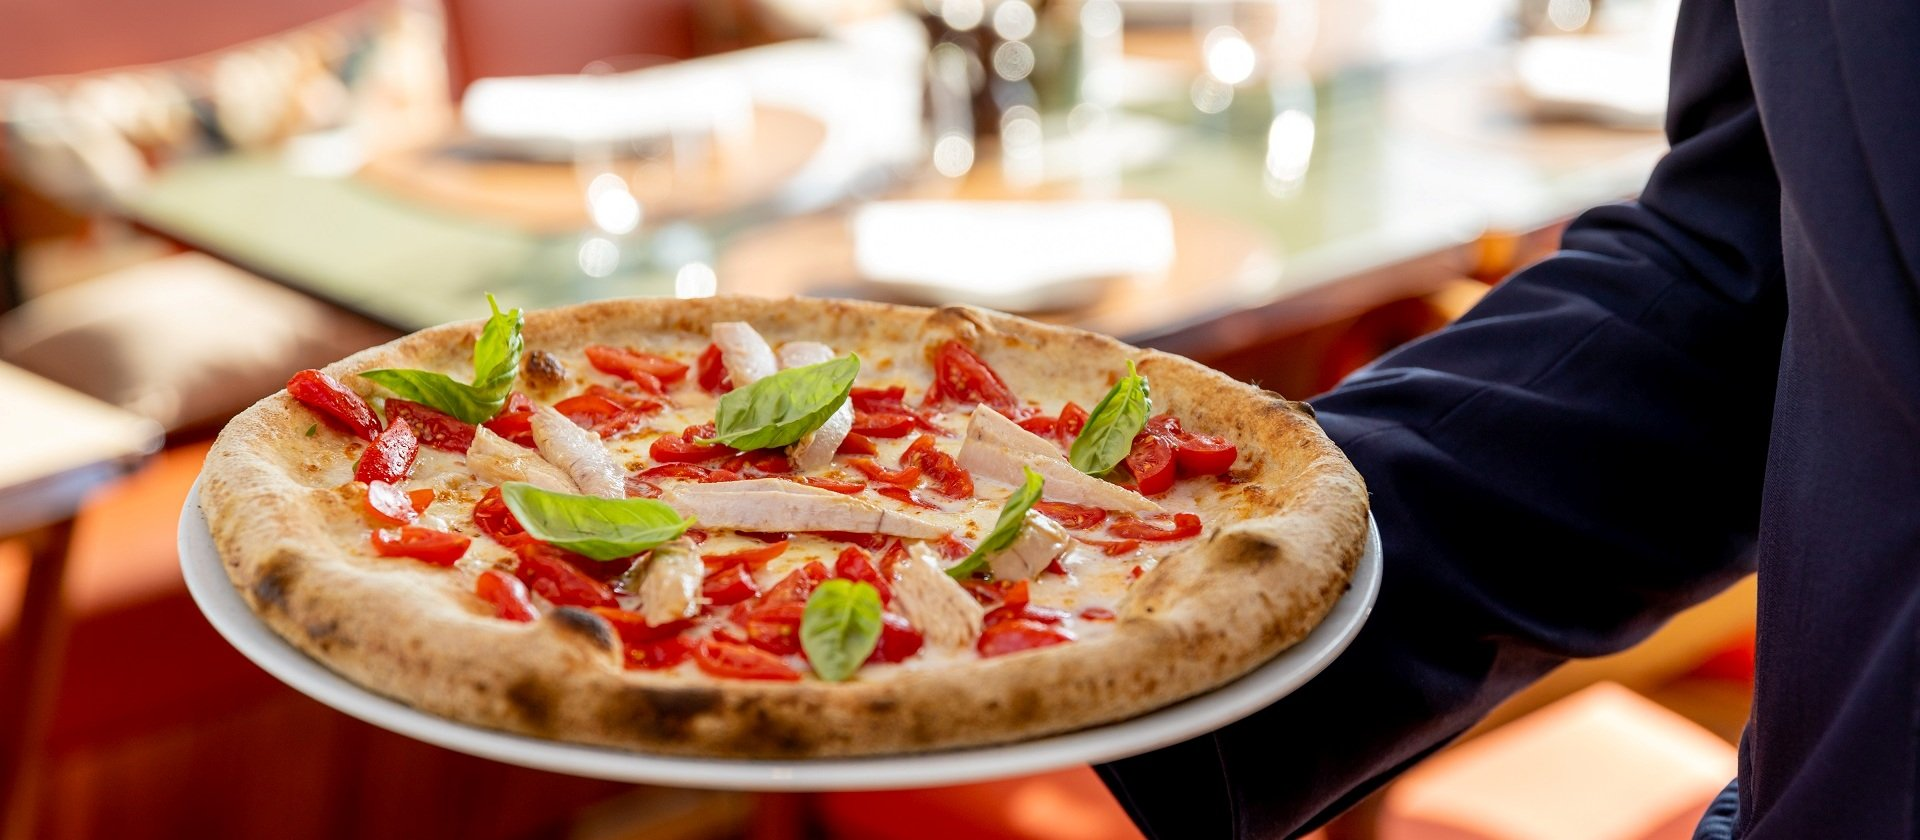 Hoven baked pizza with tuna and tomates served at Il Giardino Ristorante